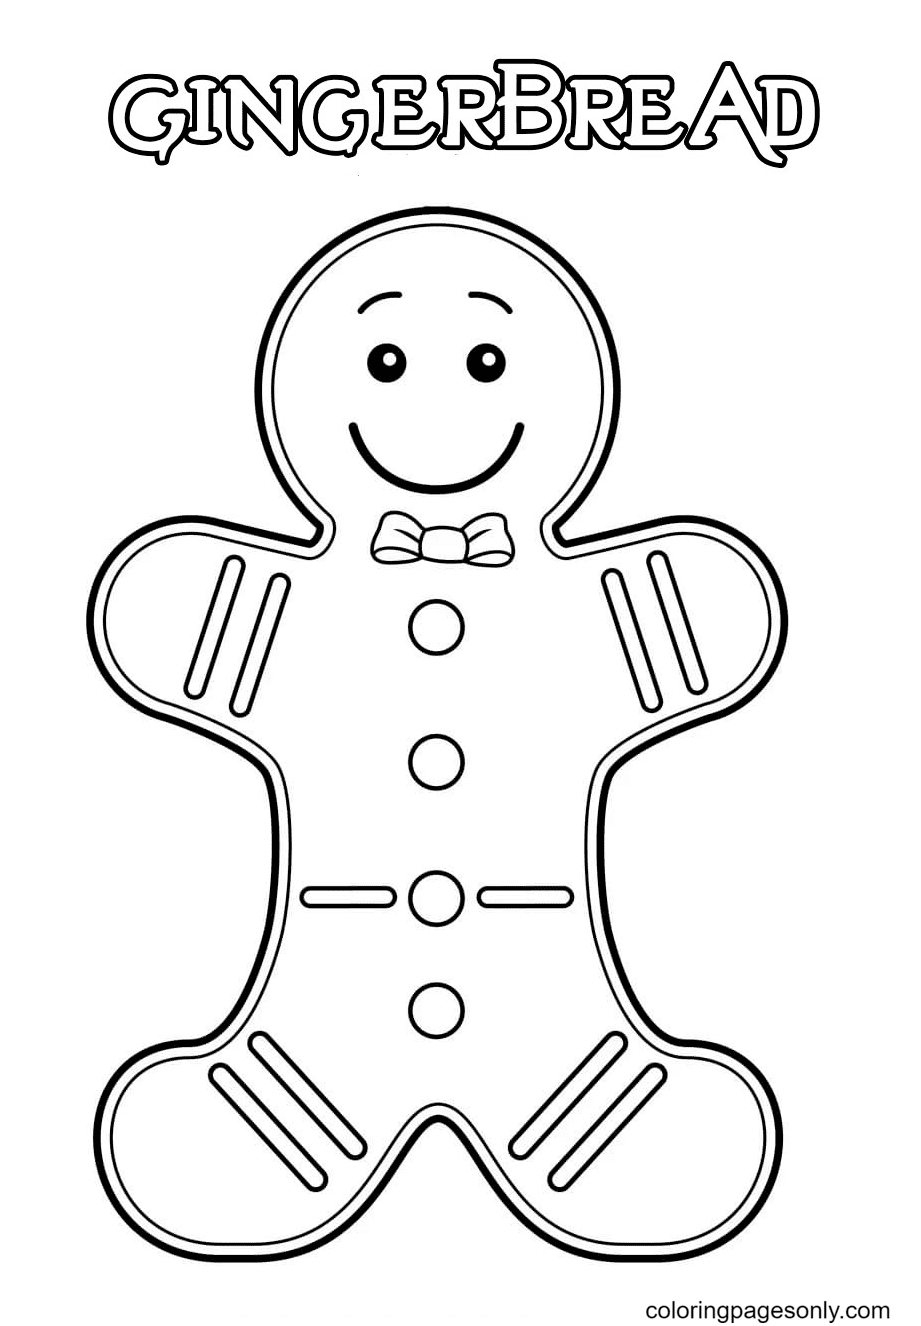 Sweet Gingerbread Man Coloring Page